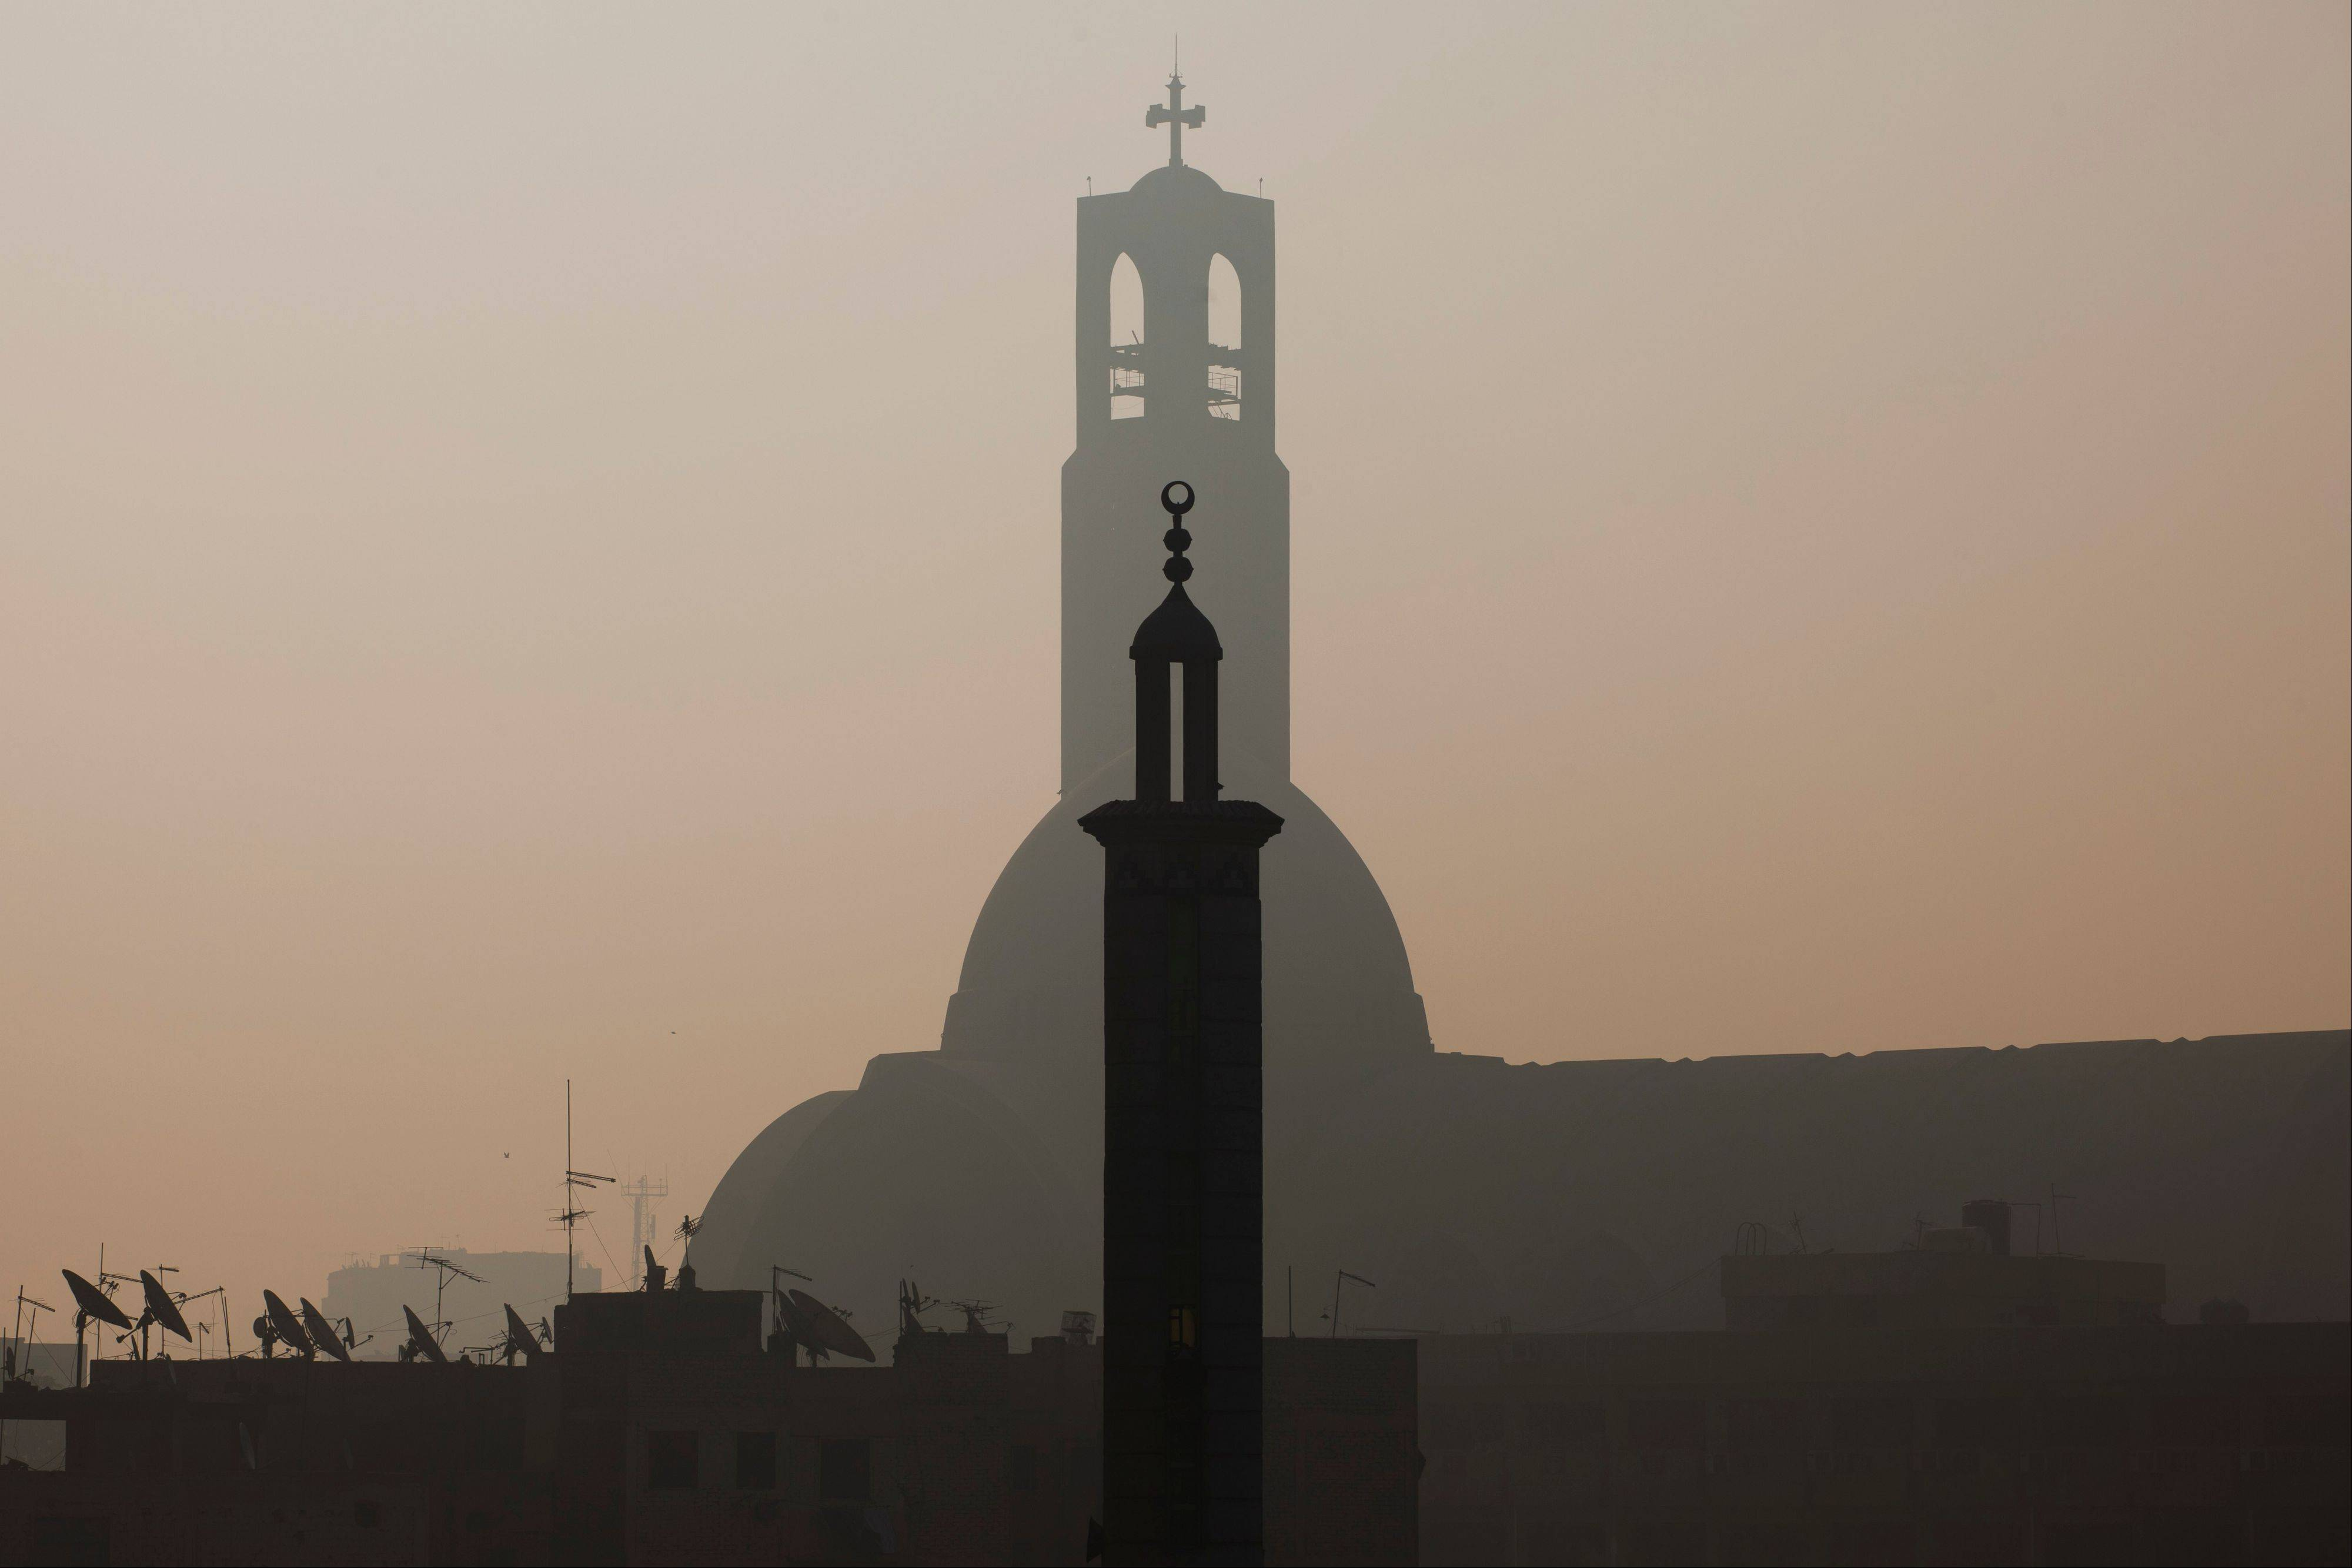 A minaret of a mosque is silhouetted in front of the St. Mark's Coptic Orthodox Cathedral in Cairo, Egypt.